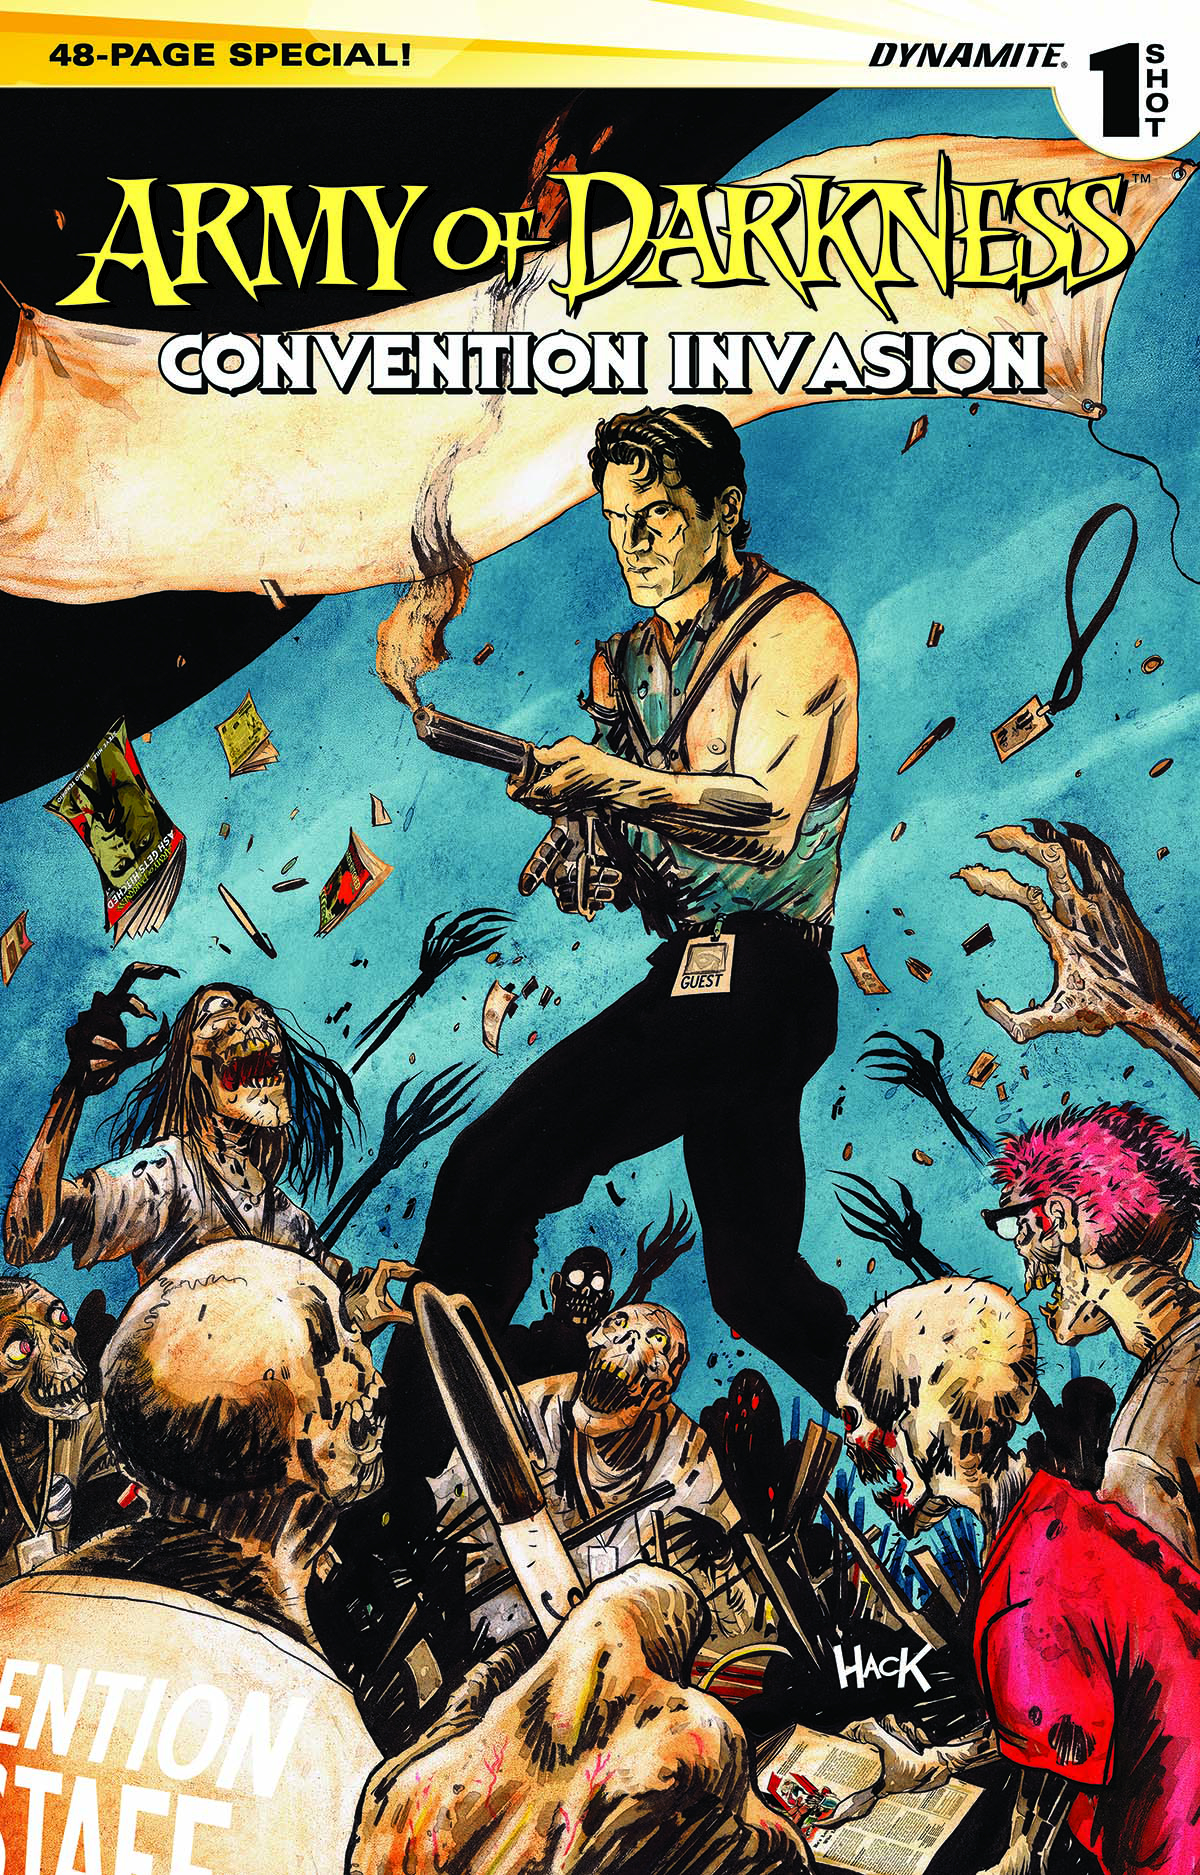 ARMY OF DARKNESS CONVENTION INVASION ONE SHOT